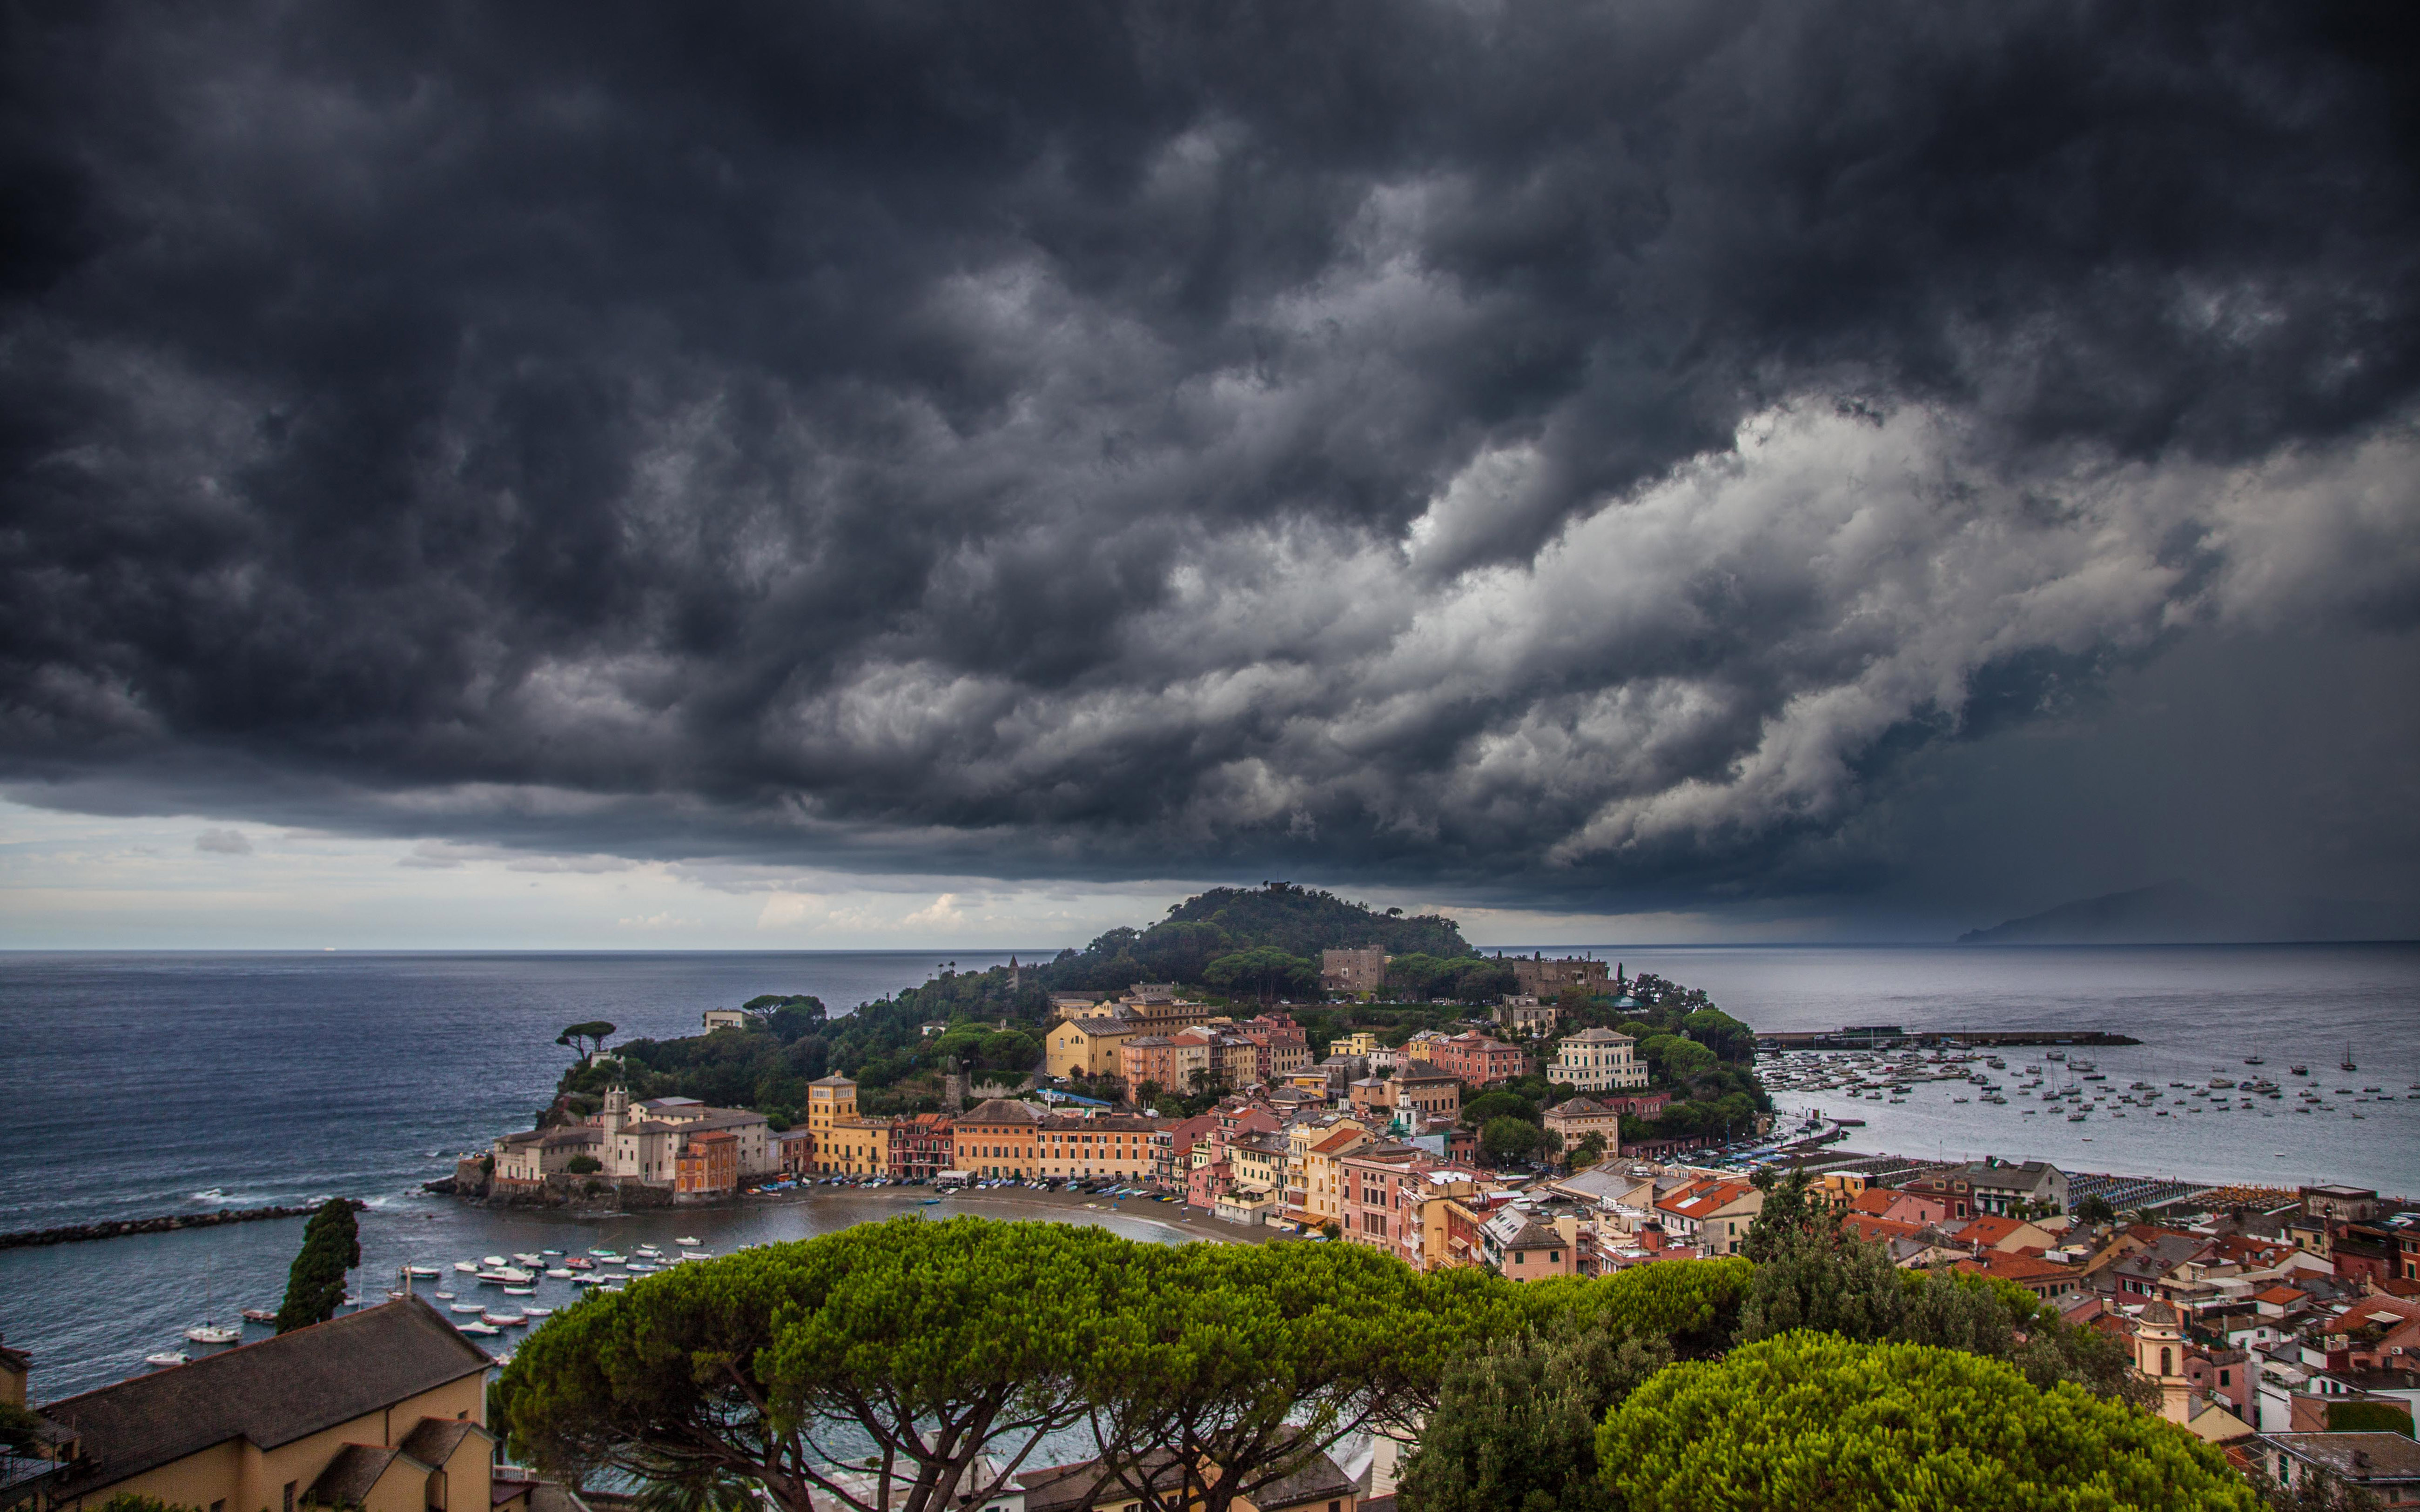 Storm Over The City Sestri Levante Mediterranean Italy Wallpaper Download Hd 5200x3250